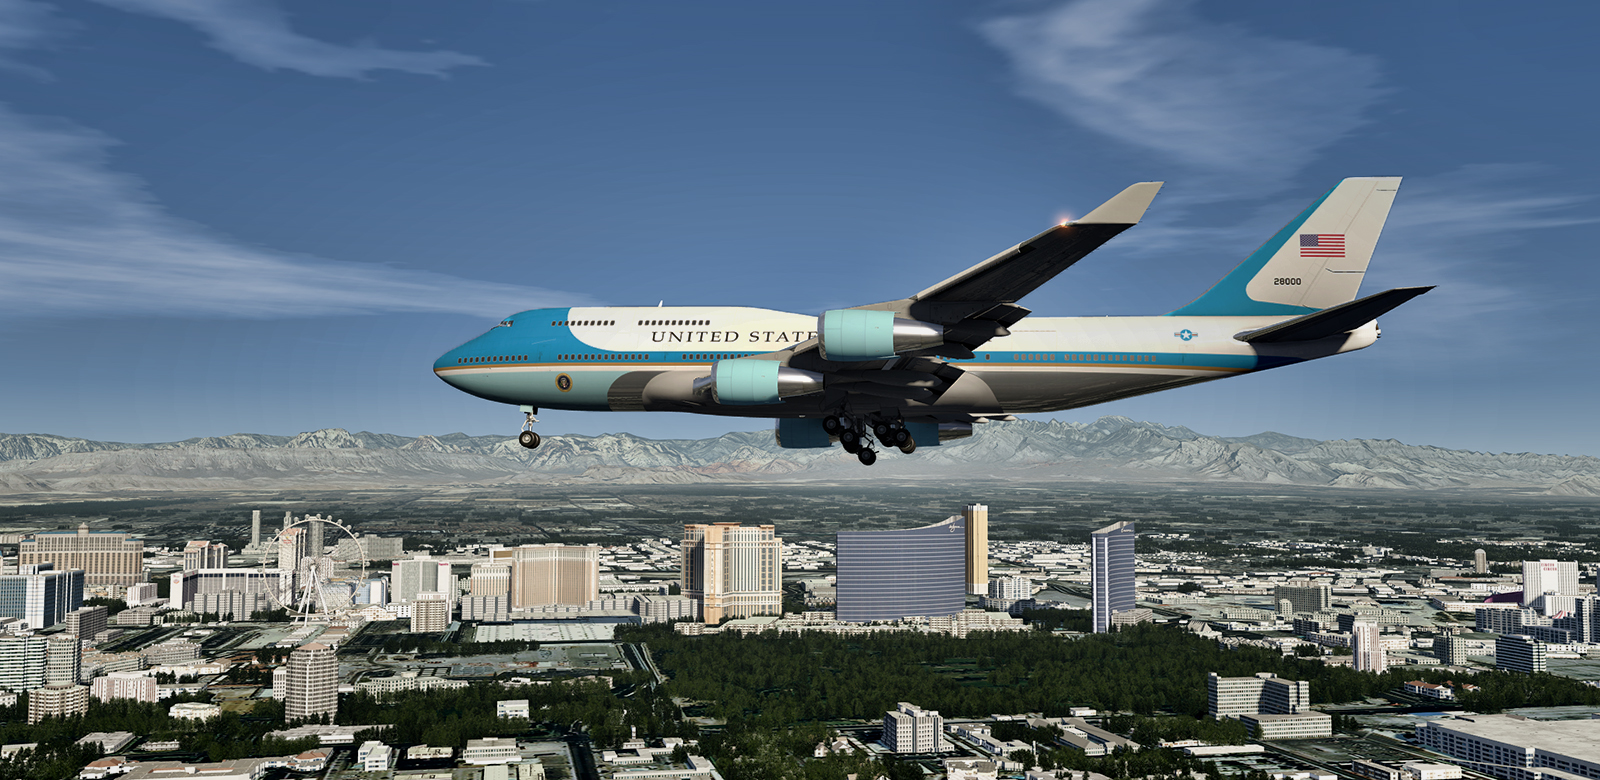 Air Force One landing at KLAS